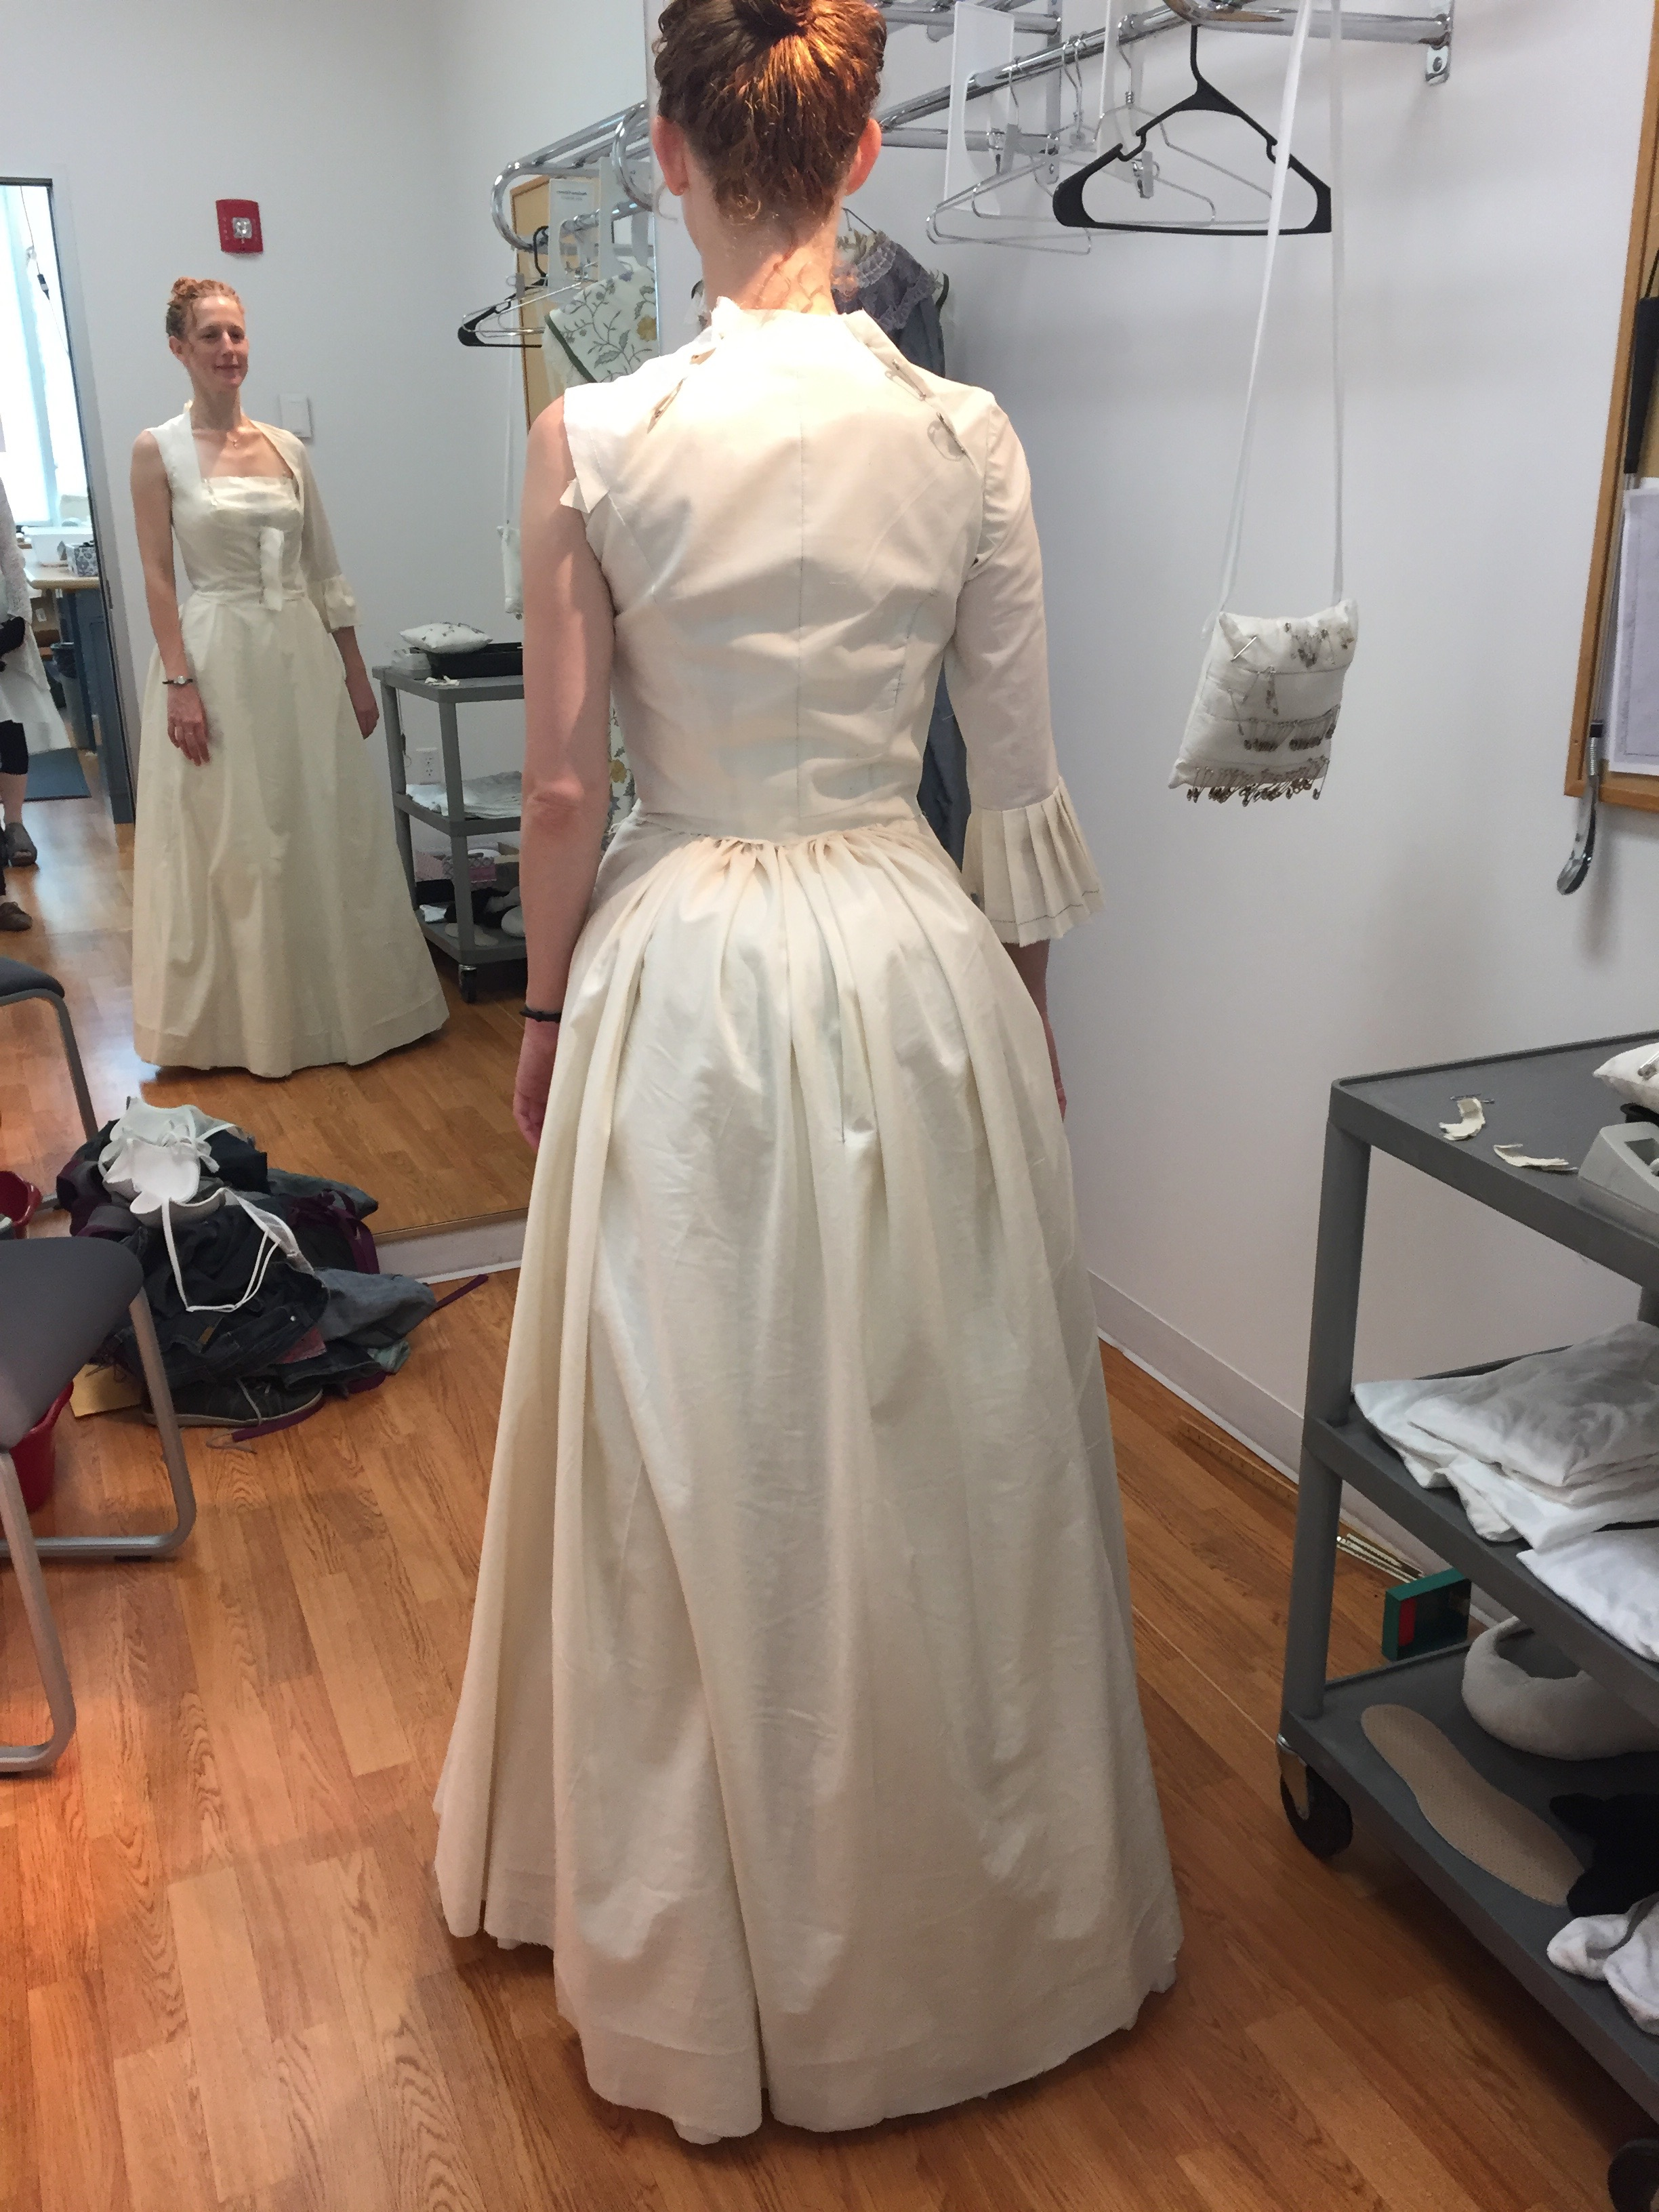 Rosalind - Initial fitting for...